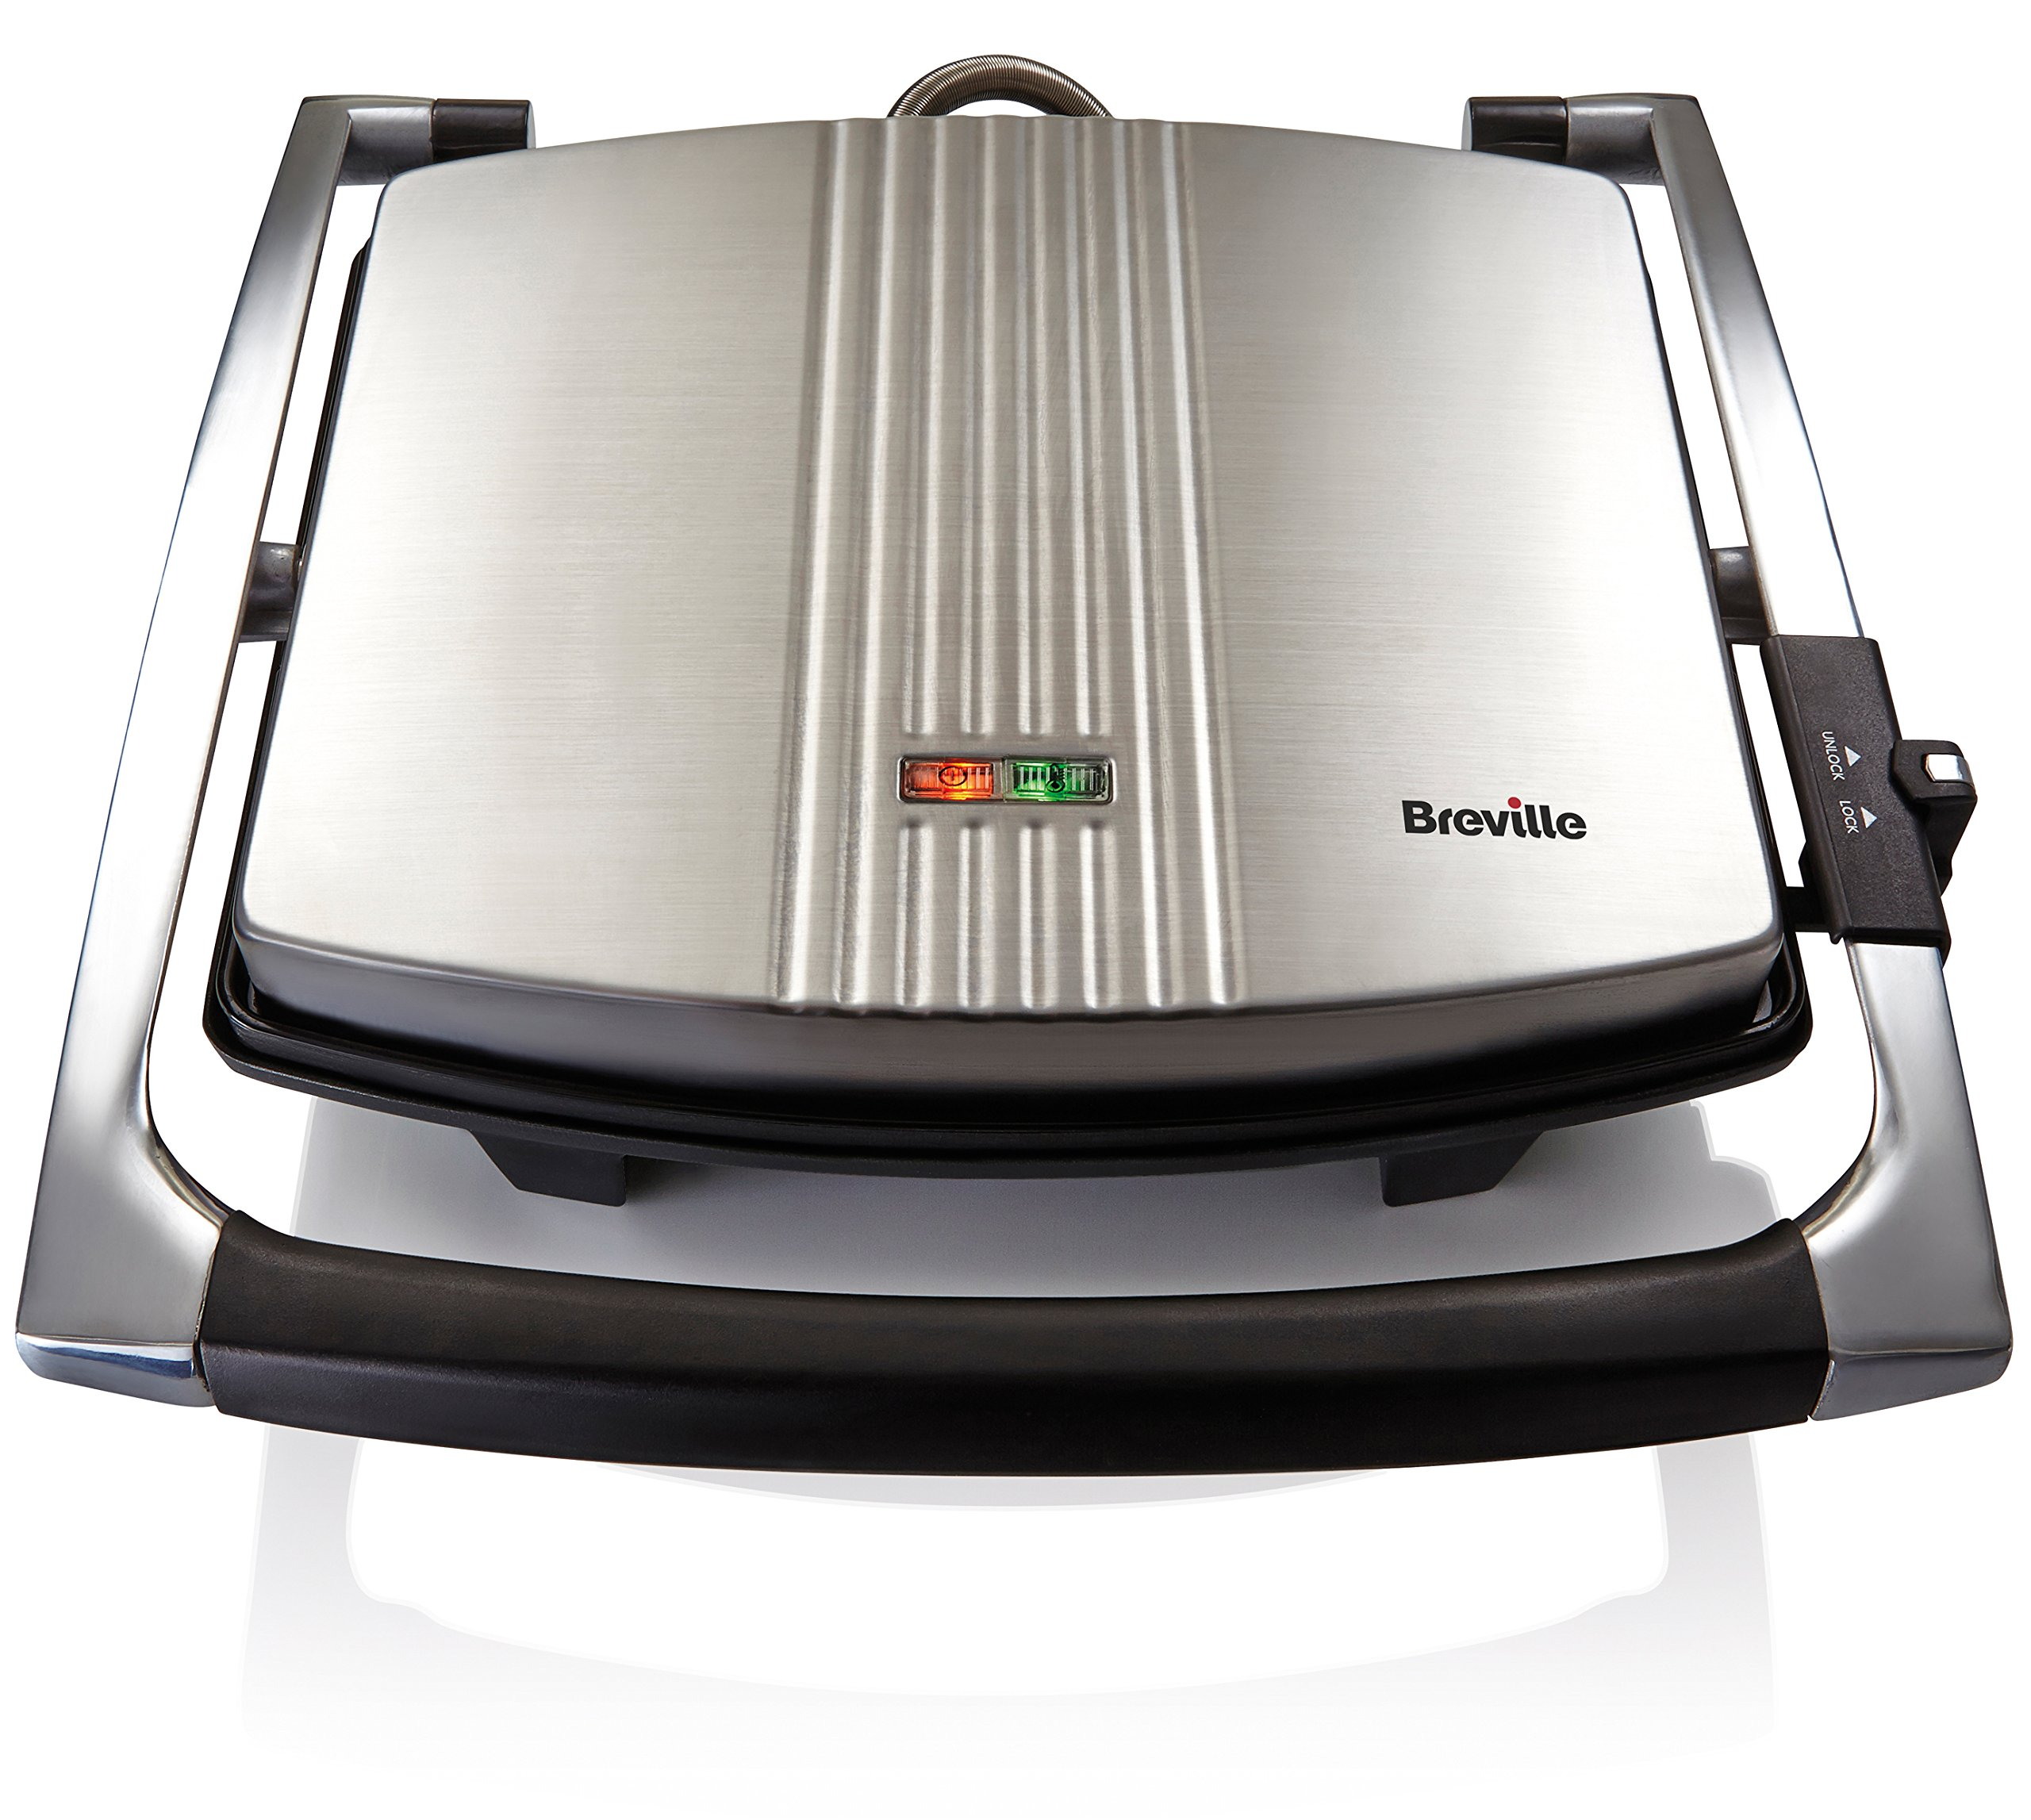 Breville BRVST026X Sandwich Press & Panini Maker, 220-240 Volt/ 50 Hz, (INTERNATIONAL VOLTAGE & PLUG) FOR OVERSEAS USE ONLY WILL NOT WORK IN THE US, OUR PRODUCT ARE BRAND NEW, WE DO NOT SELL USED OR REFERBUSHED PRODUCTS.